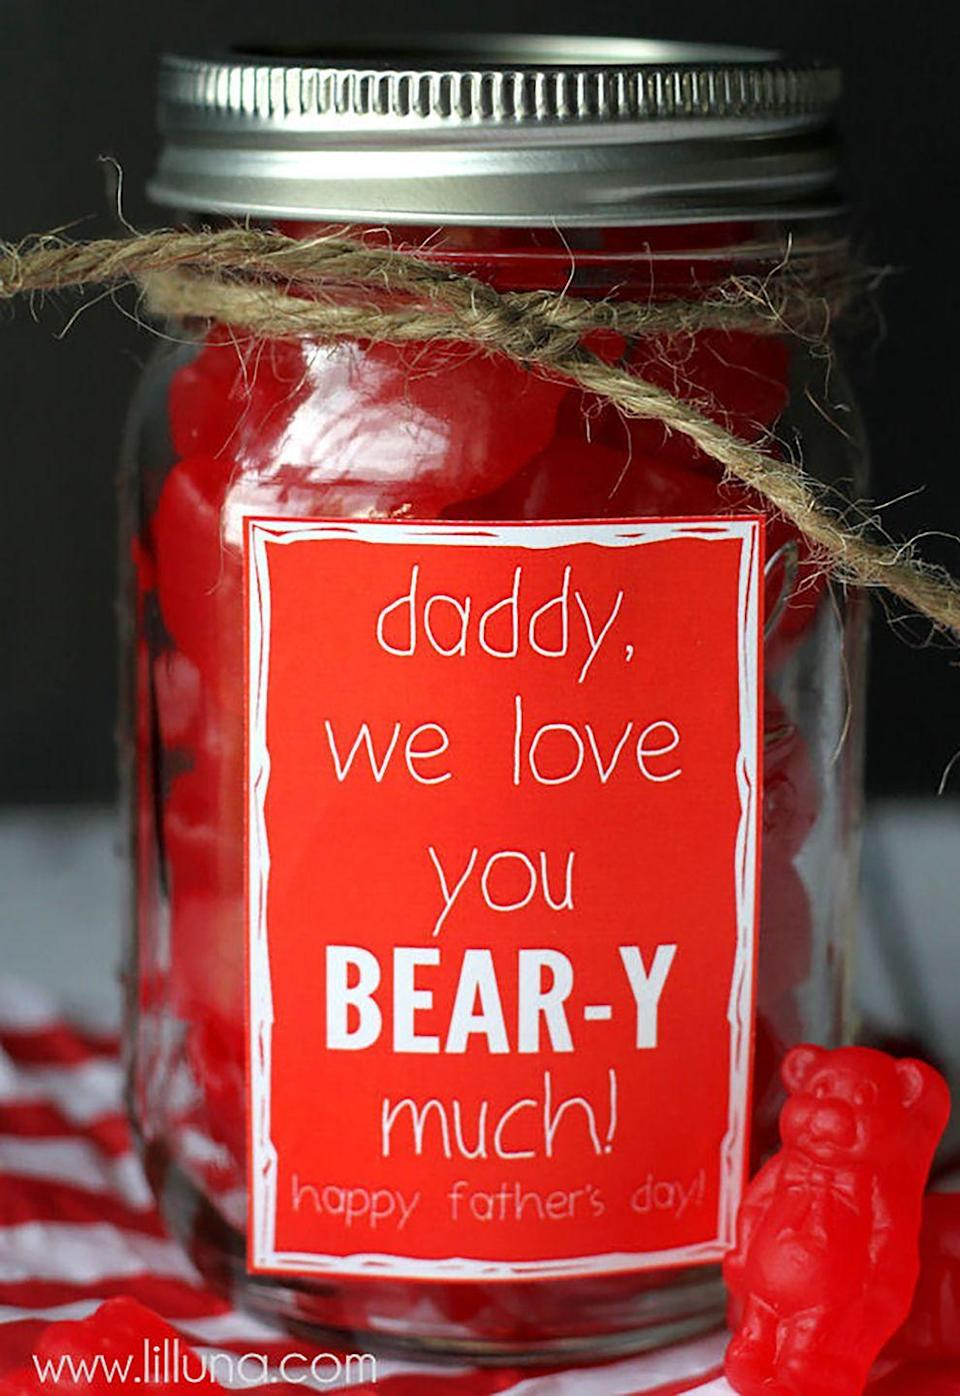 """<p>Show Dad you love him """"bear-y"""" much with this simple yet creative candy jar. </p><p><strong><em>Get the tutorial at <a href=""""https://lilluna.com/fathers-day-jar-gift/"""" rel=""""nofollow noopener"""" target=""""_blank"""" data-ylk=""""slk:'Lil Luna"""" class=""""link rapid-noclick-resp"""">'Lil Luna</a>. </em></strong></p><p><strong>What You'll Need: </strong><a href=""""https://www.amazon.com/Ball-Pint-Jar-Regular-Mouth/dp/B01NBMPHYV/"""" rel=""""nofollow noopener"""" target=""""_blank"""" data-ylk=""""slk:Mason jars"""" class=""""link rapid-noclick-resp"""">Mason jars</a> ($9 for two, Amazon); <span class=""""redactor-unlink""""><a href=""""https://www.amazon.com/Tenn-Well-Industrial-Decoration-Applications/dp/B01LRQB69O/"""" rel=""""nofollow noopener"""" target=""""_blank"""" data-ylk=""""slk:jute twine"""" class=""""link rapid-noclick-resp"""">jute twine</a></span> ($7, Amazon) </p>"""